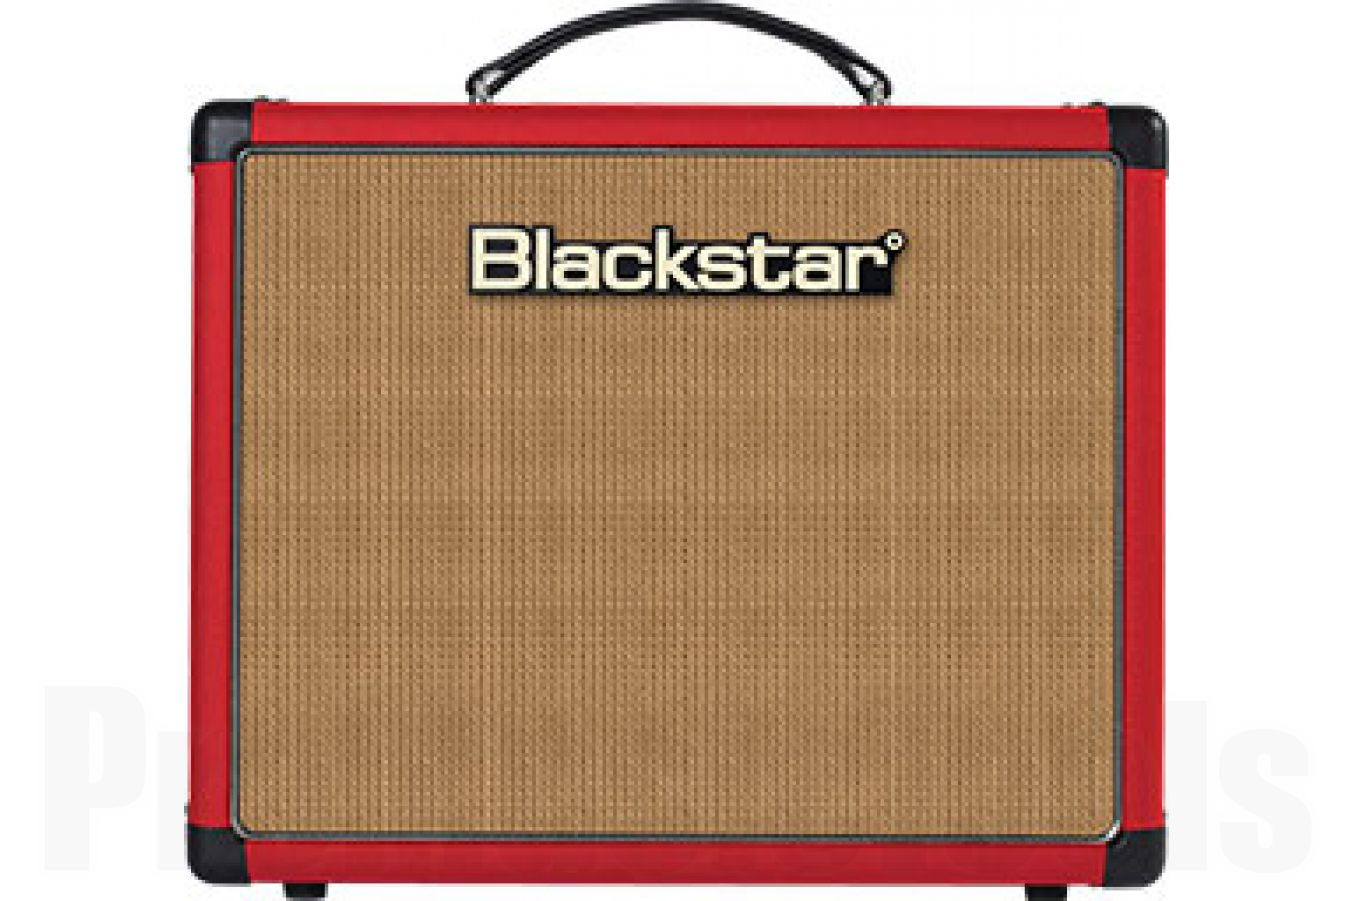 Blackstar HT-5R Combo - Red Limited Edition - b-stock (1x opened box)